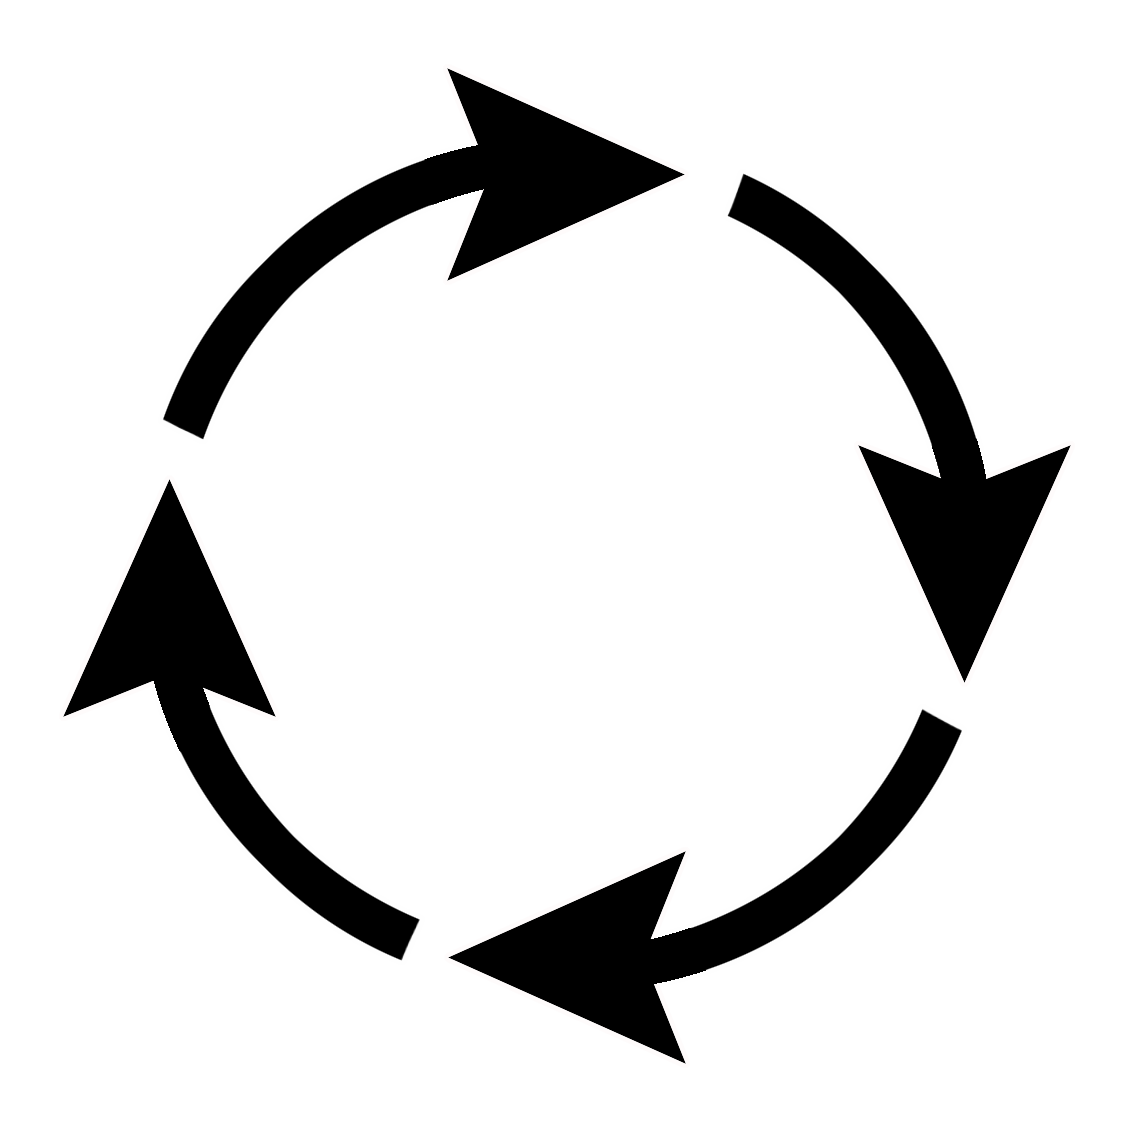 Circle clipart arrow. All kinds of sign